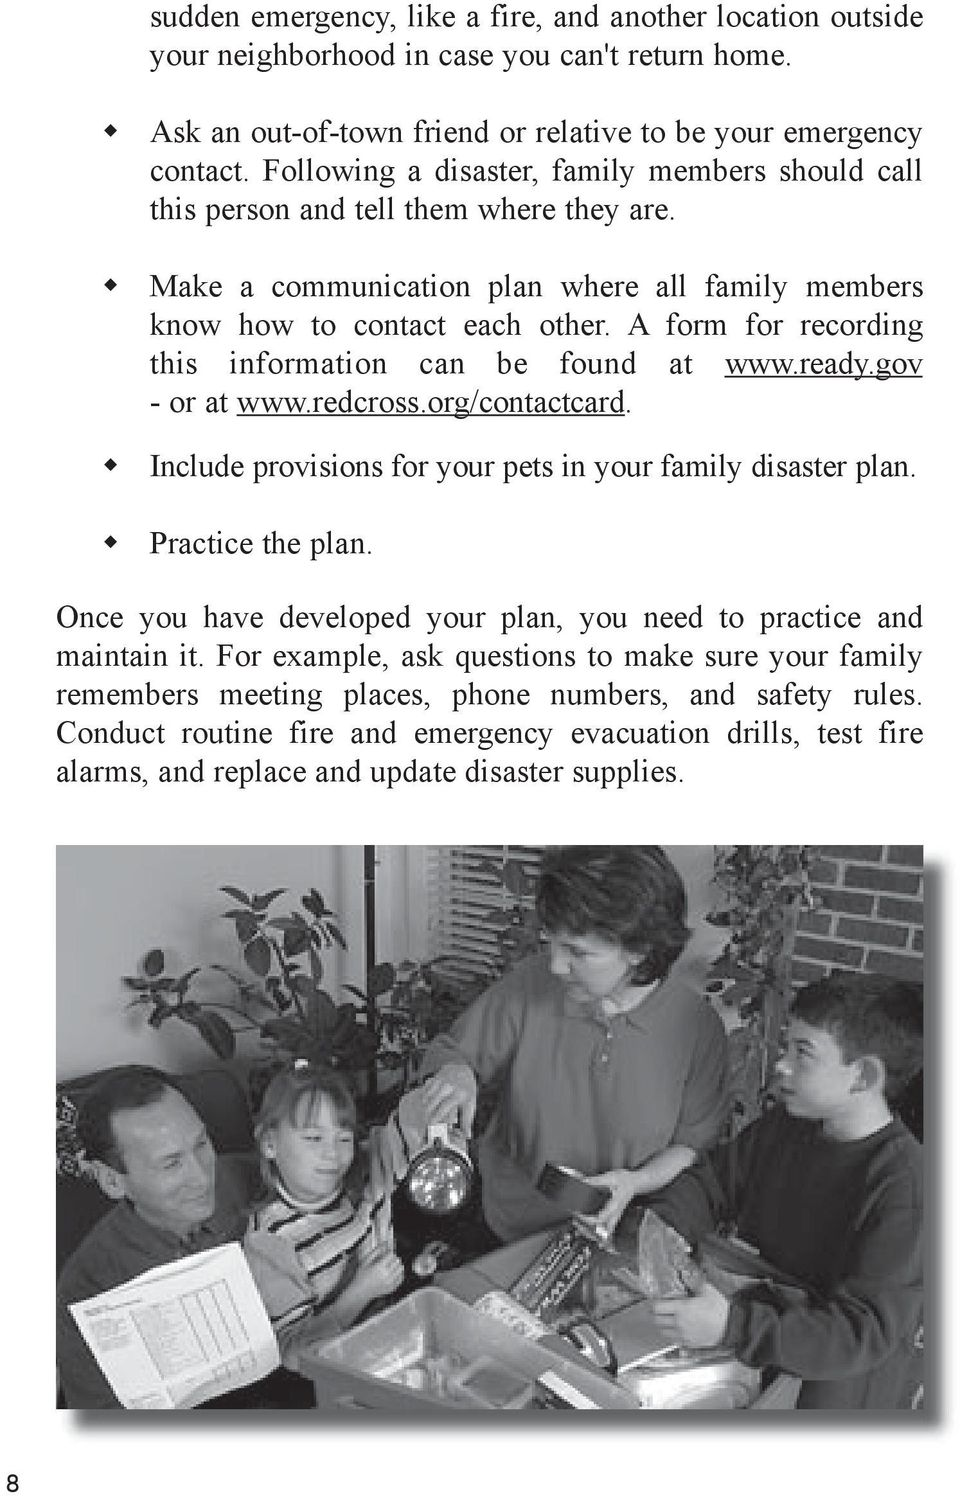 A form for recording this information can be found at www.ready.gov - or at www.redcross.org/contactcard. Include provisions for your pets in your family disaster plan. Practice the plan.